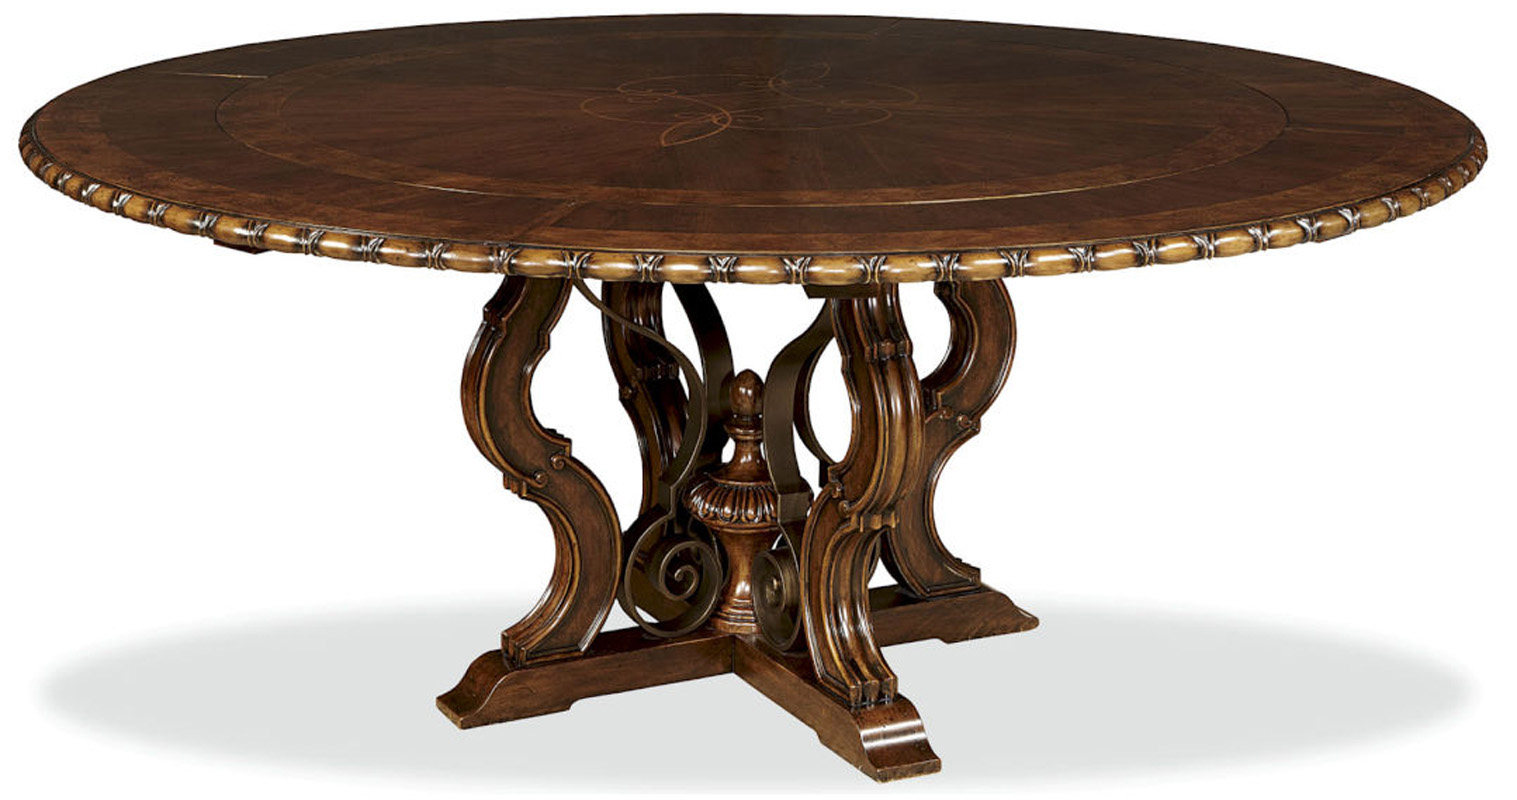 unique cherry 76 round dining table with leaves ebay. Black Bedroom Furniture Sets. Home Design Ideas